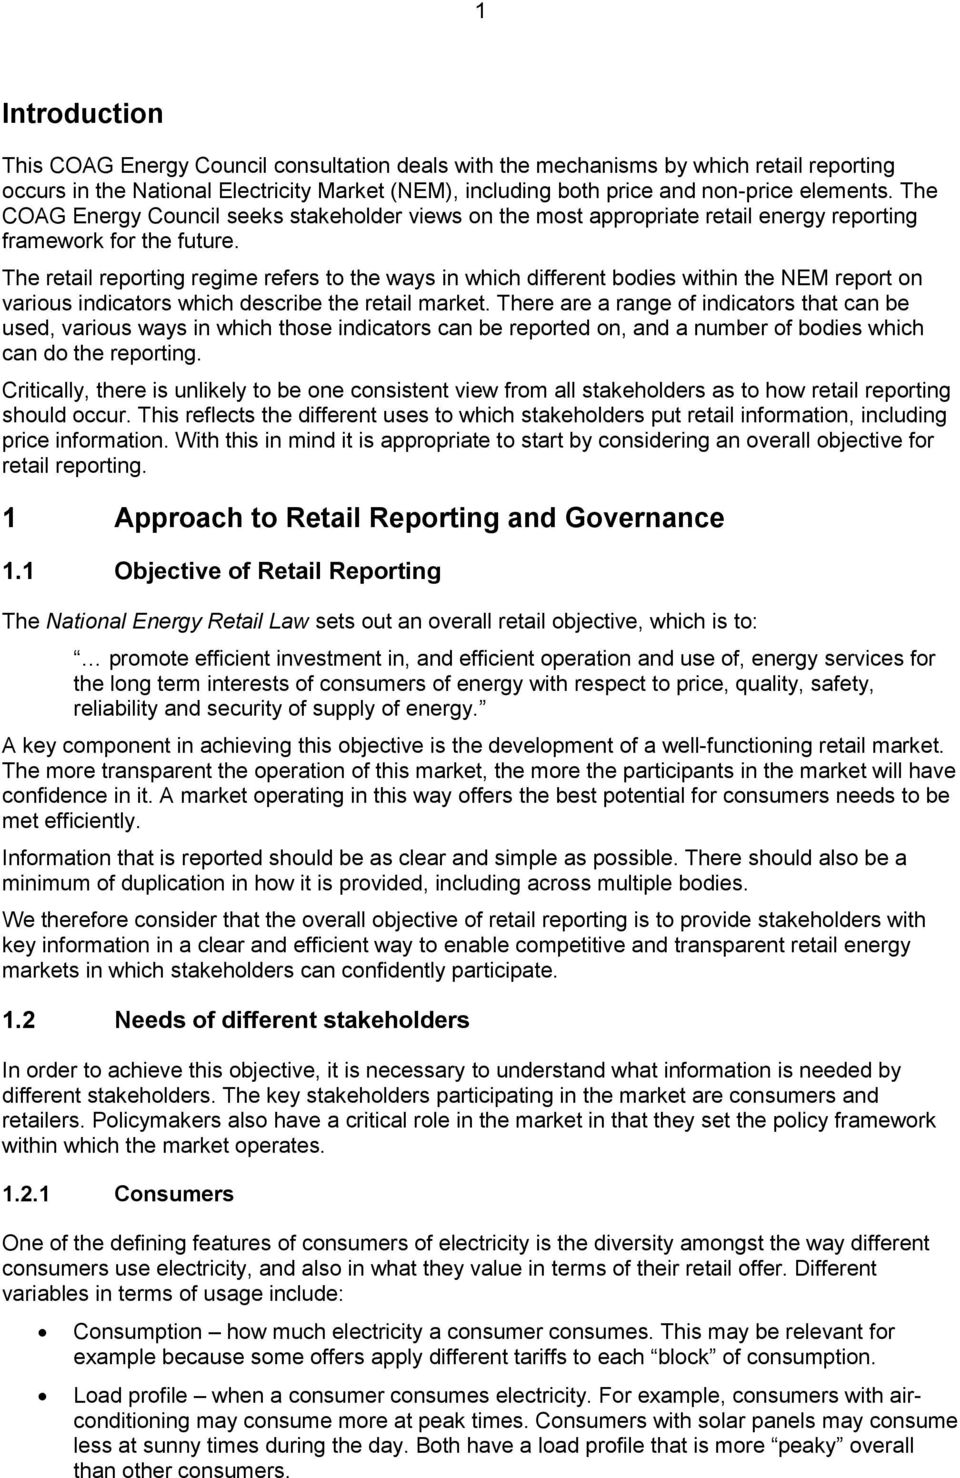 The retail reporting regime refers to the ways in which different bodies within the NEM report on various indicators which describe the retail market.